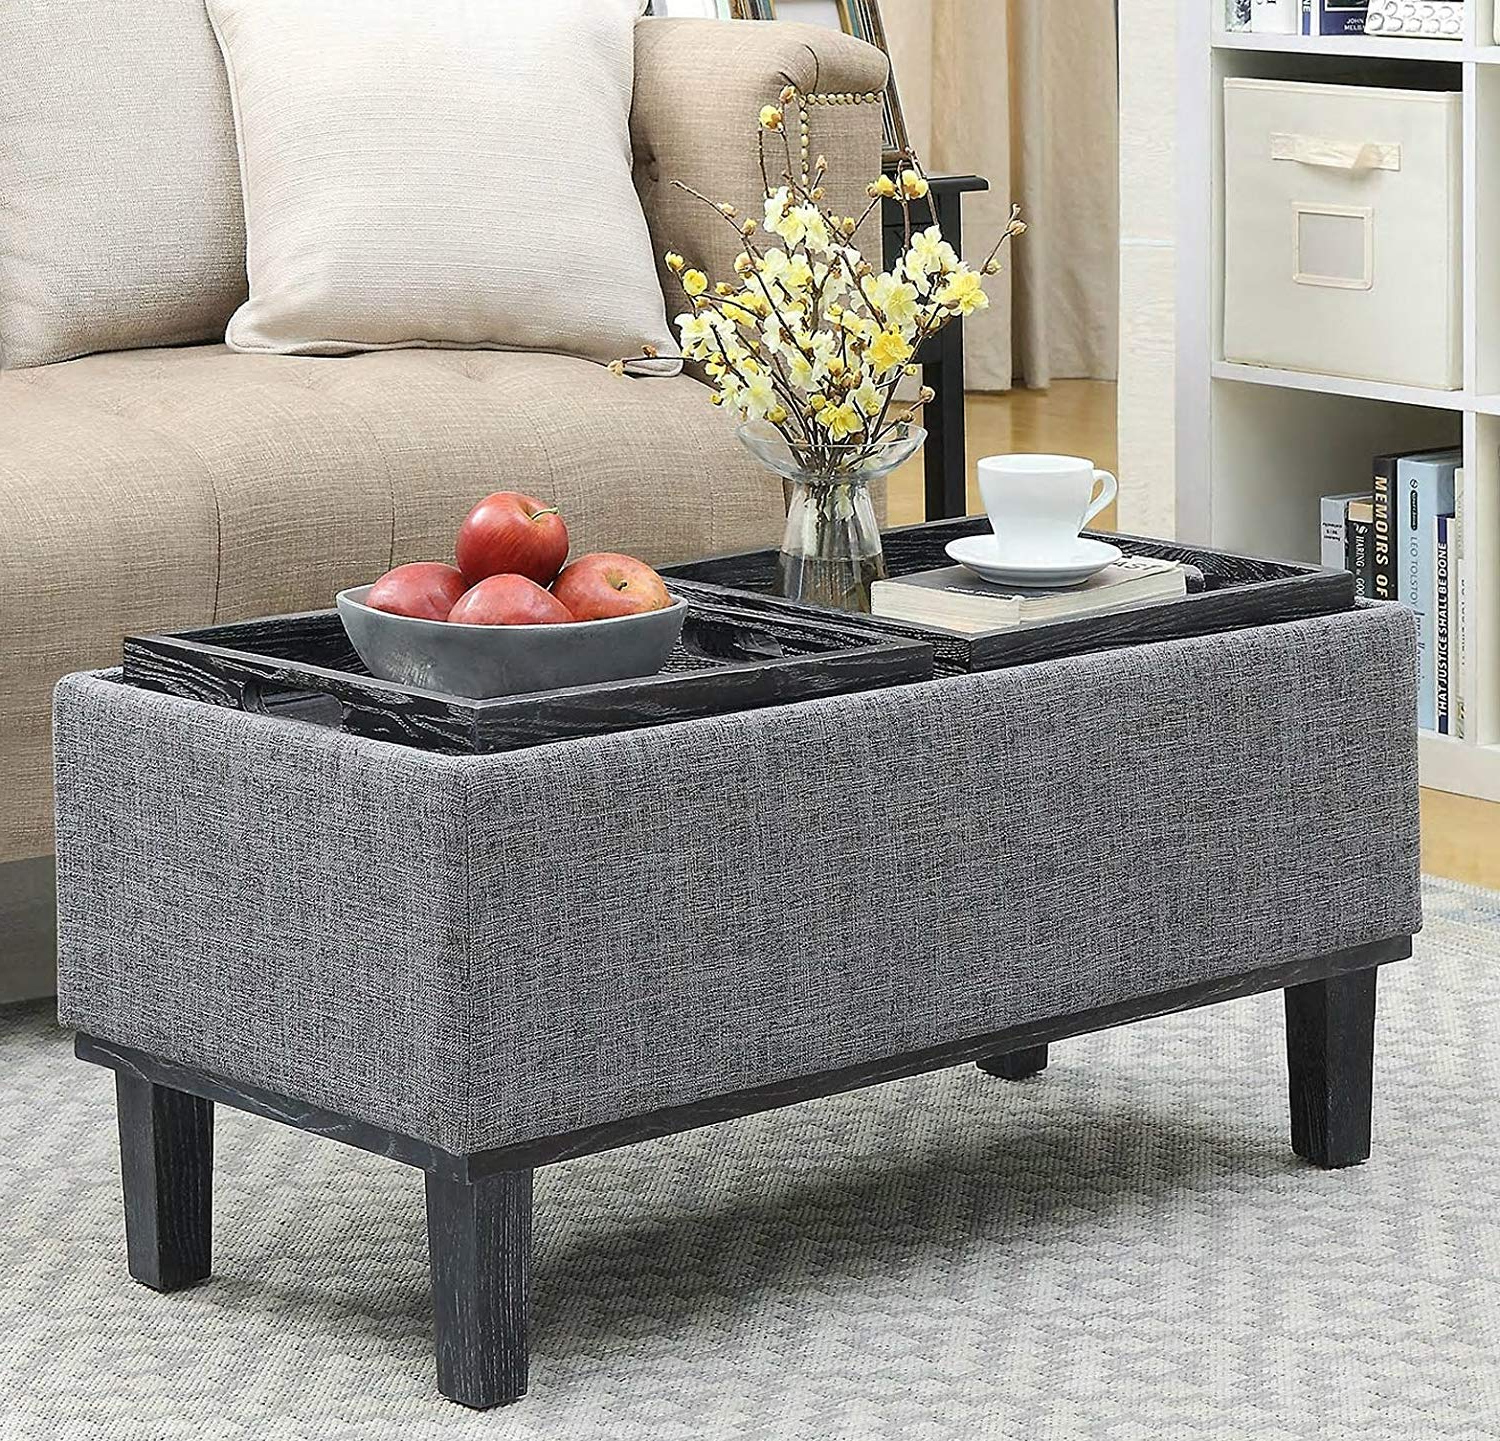 Trendy Lennon Pine Planked Storage Ottoman Coffee Tables With Regard To Storage Ottoman Coffee Table – Andrewab.co (View 12 of 20)